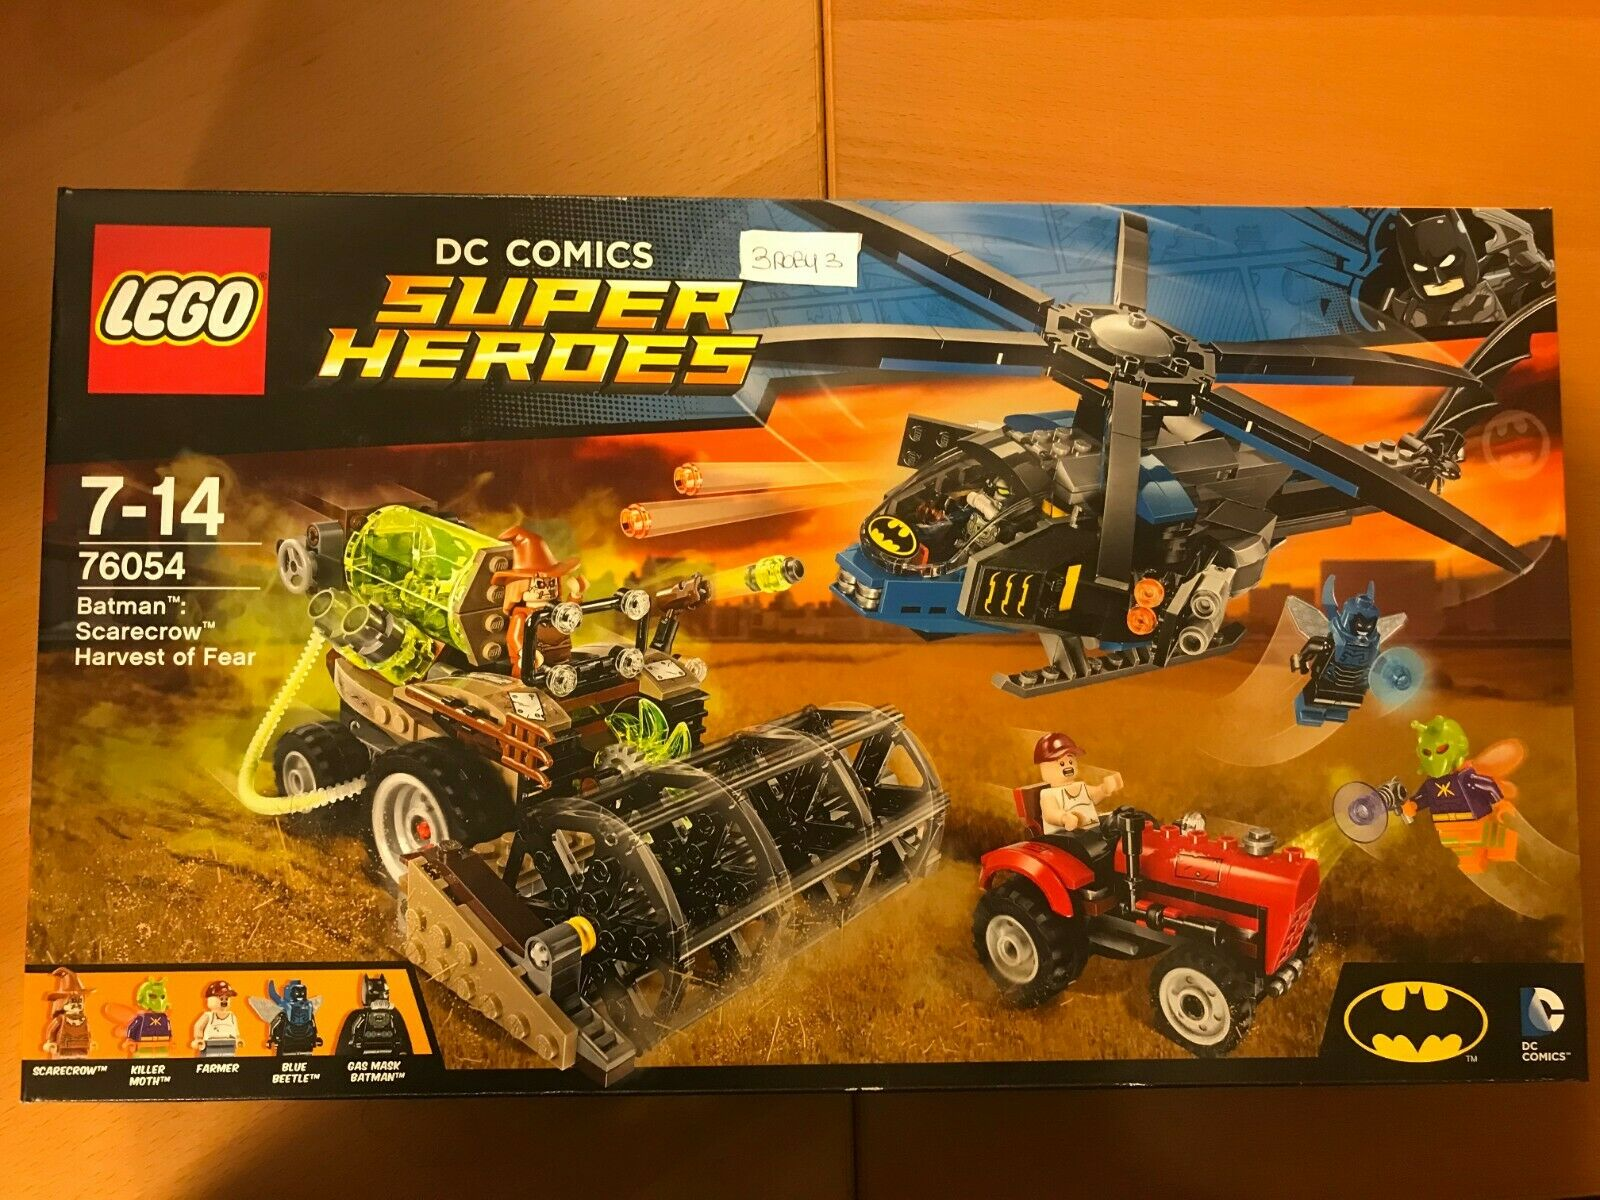 LEGO SUPER HEROES BATuomo SautoECROW HARVEST OF FEAR nuovo SEALED N 76054